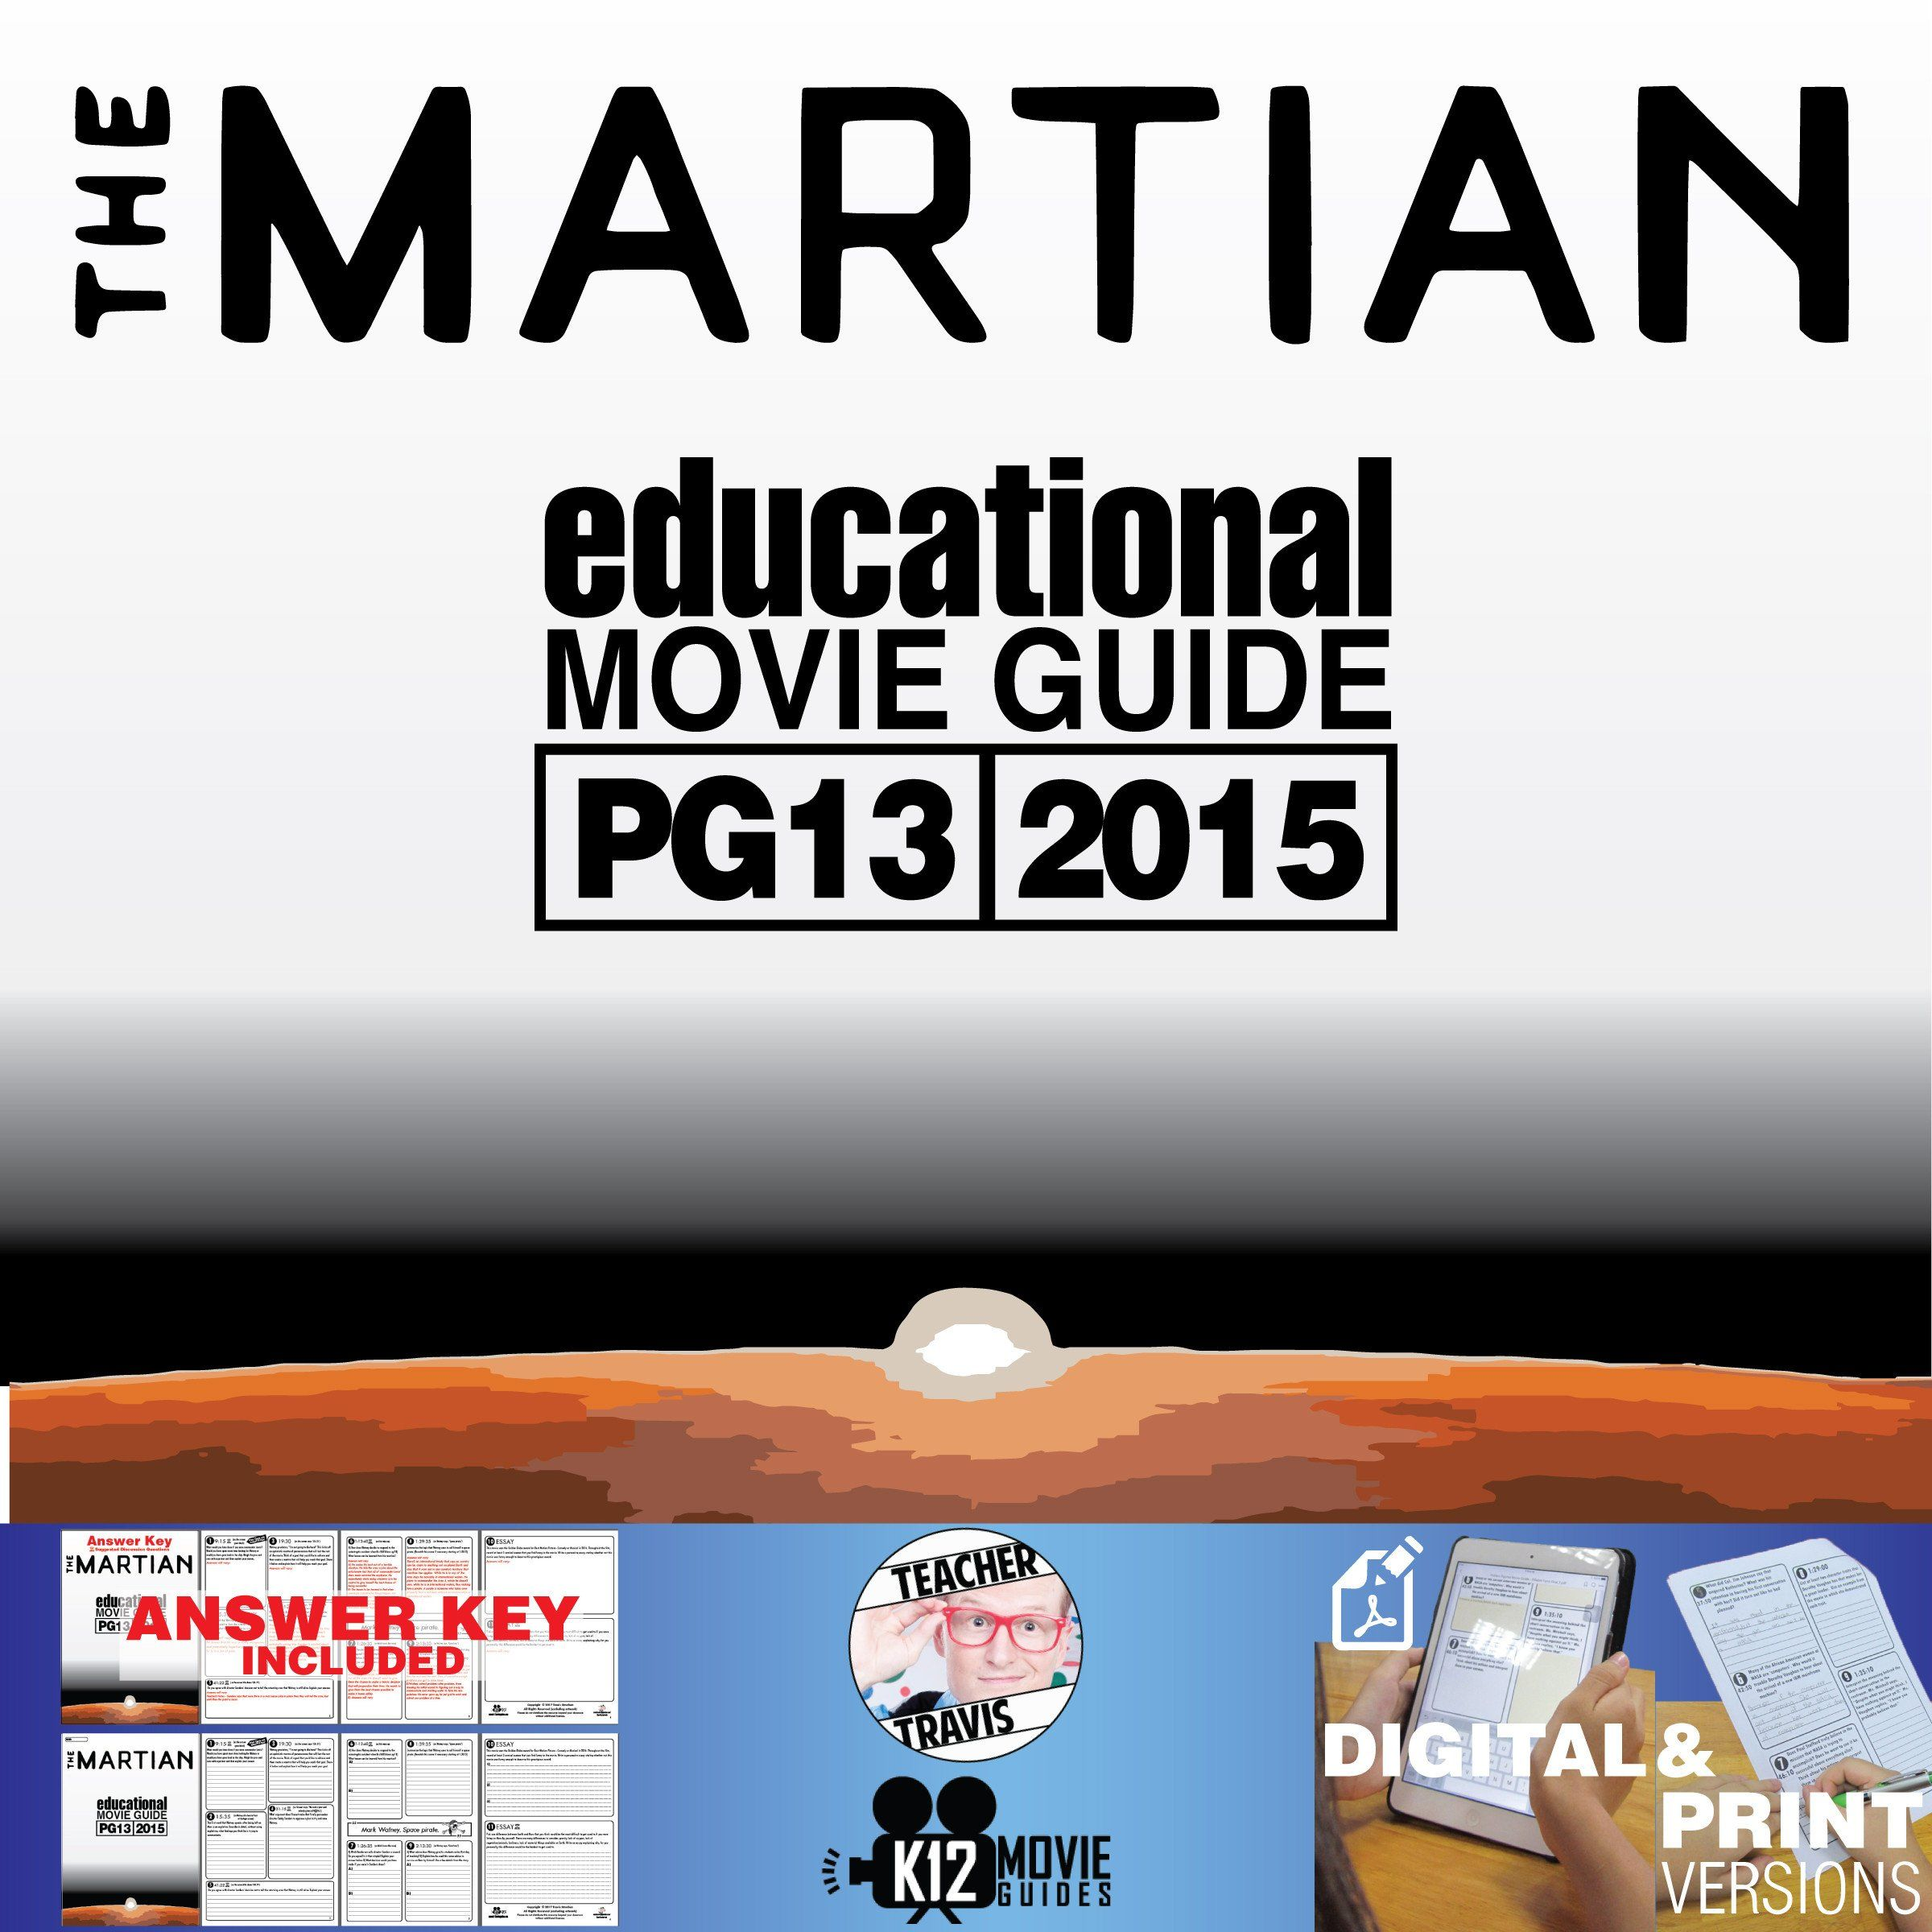 The Martian Movie Worksheet The Martian Movie Guide